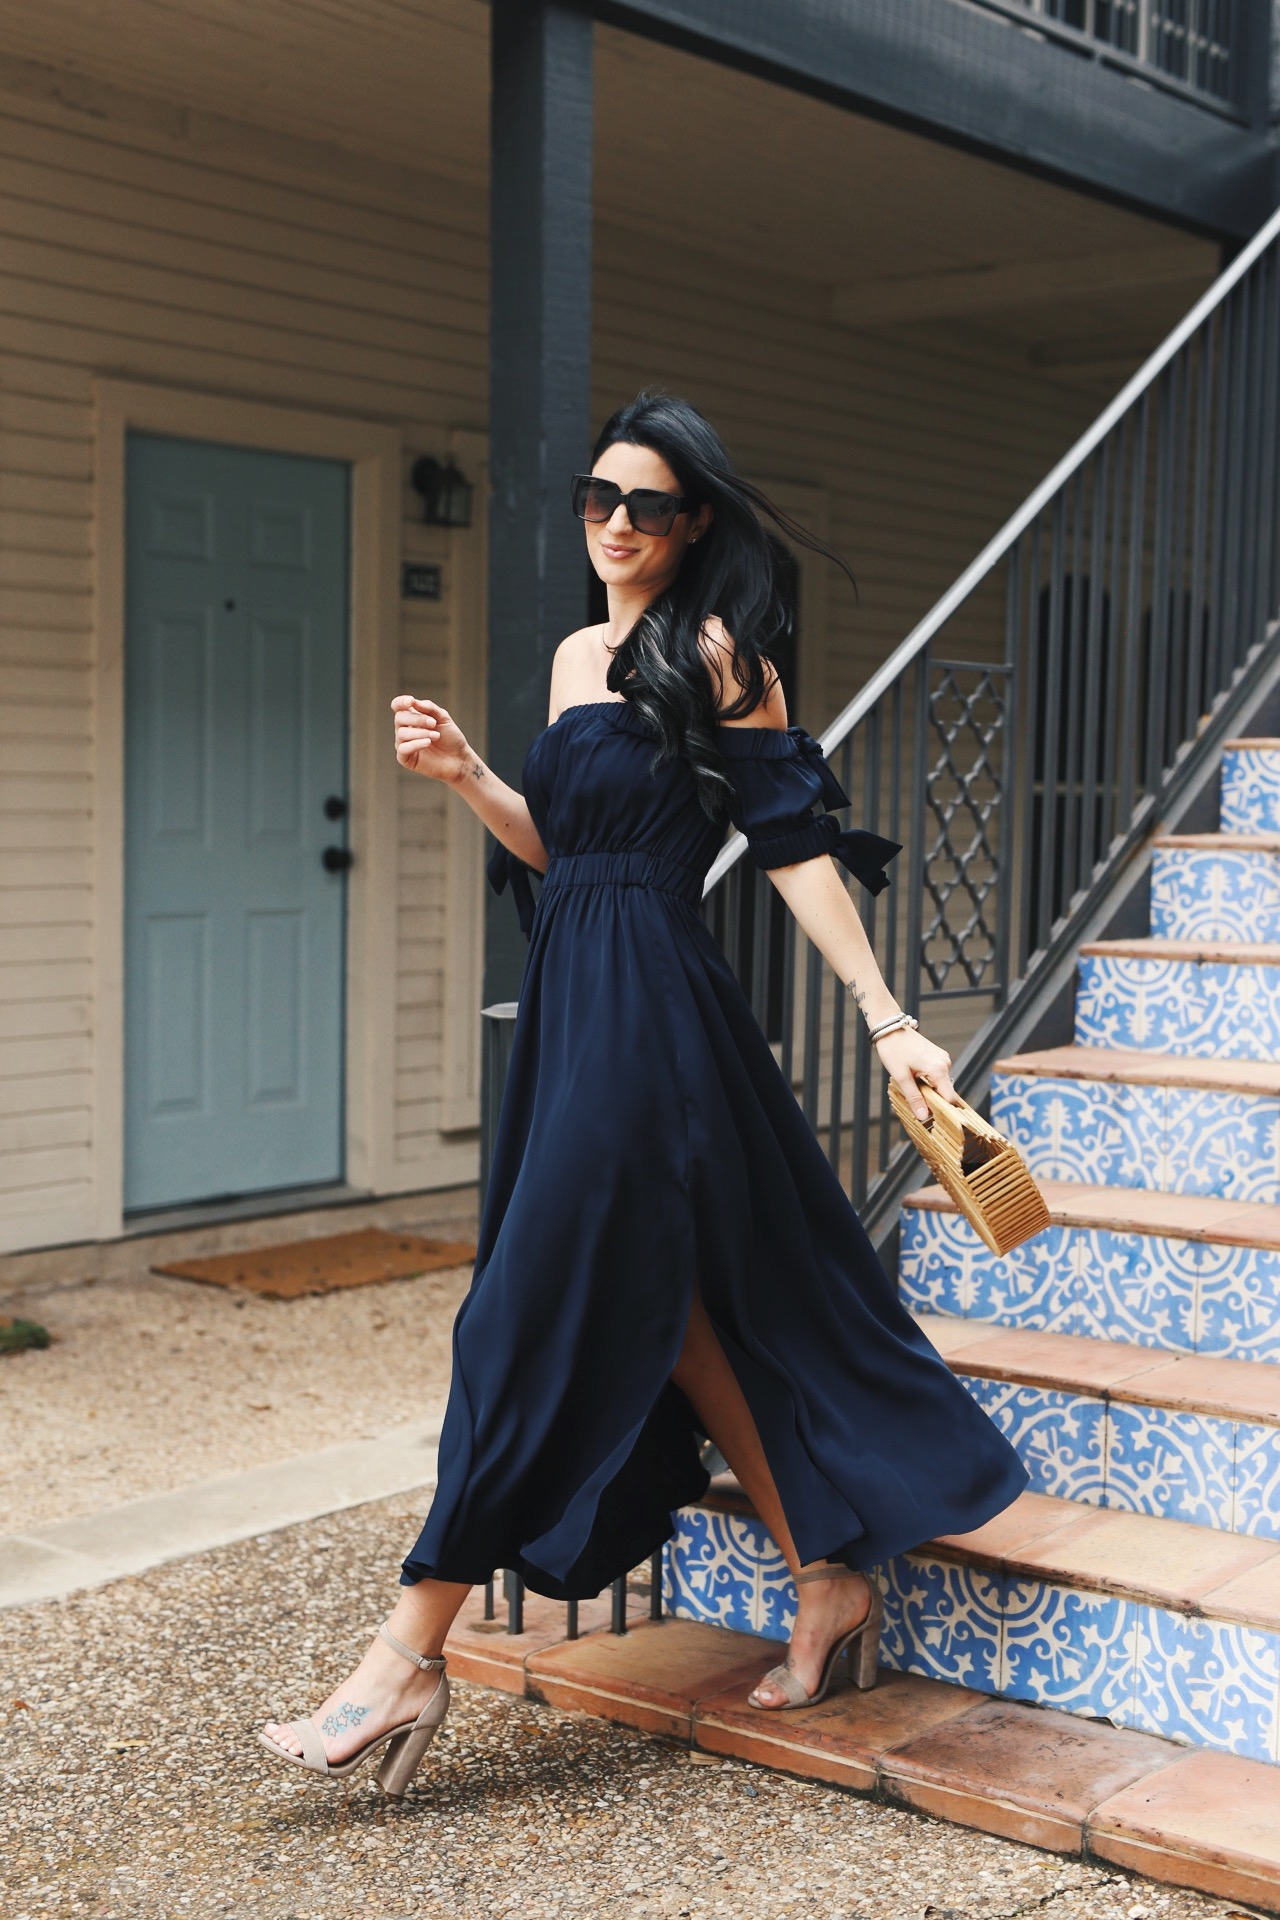 Spring and Summer Dresses featured by top US fashion blog Dressed to Kill; Image of a woman wearing - Milly dress, Cult Gaia handbag, Steve Madden shoes, YSL sunglasses, David Yurman bracelets.